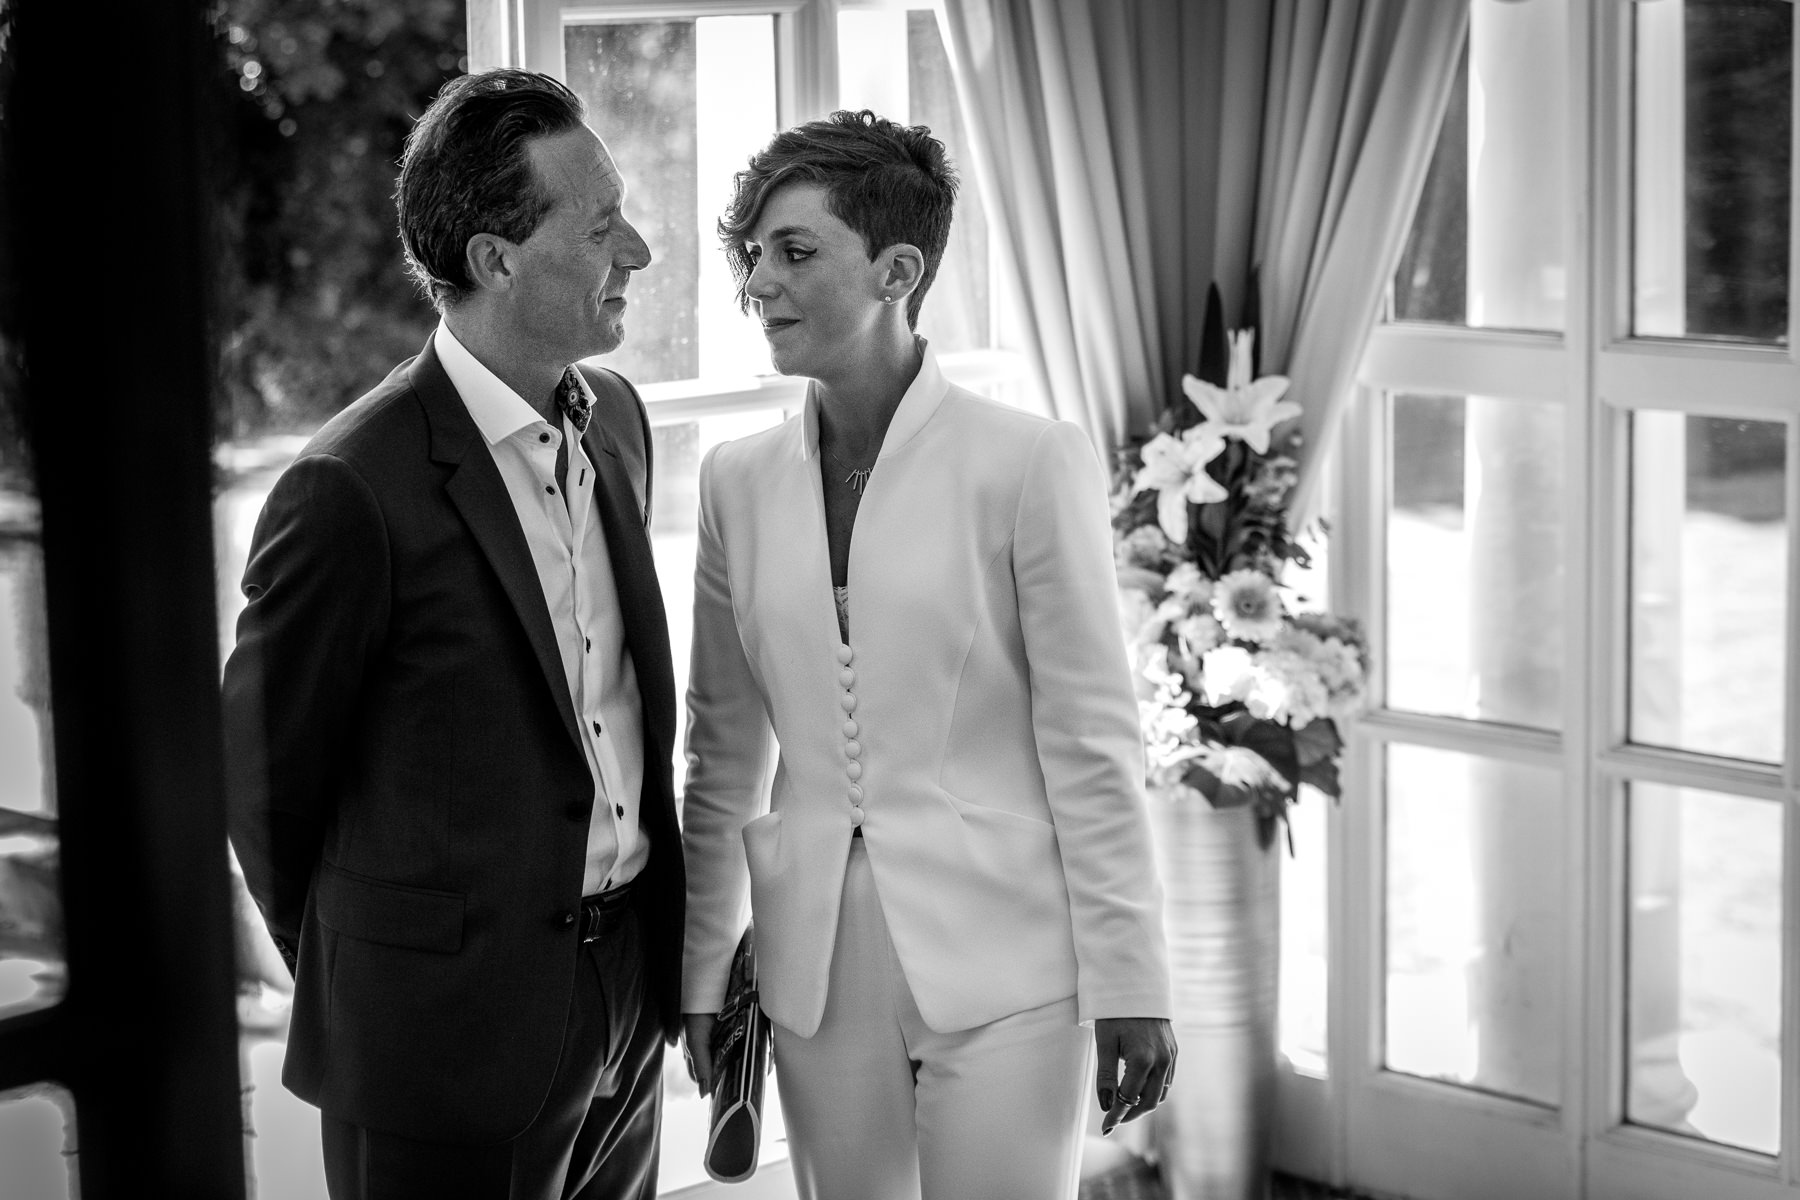 couple exchanging look of love black&white natural authentic documentary wedding photo bride groom couple beaverbrook surrey hills leatherhead register office wedding photographer